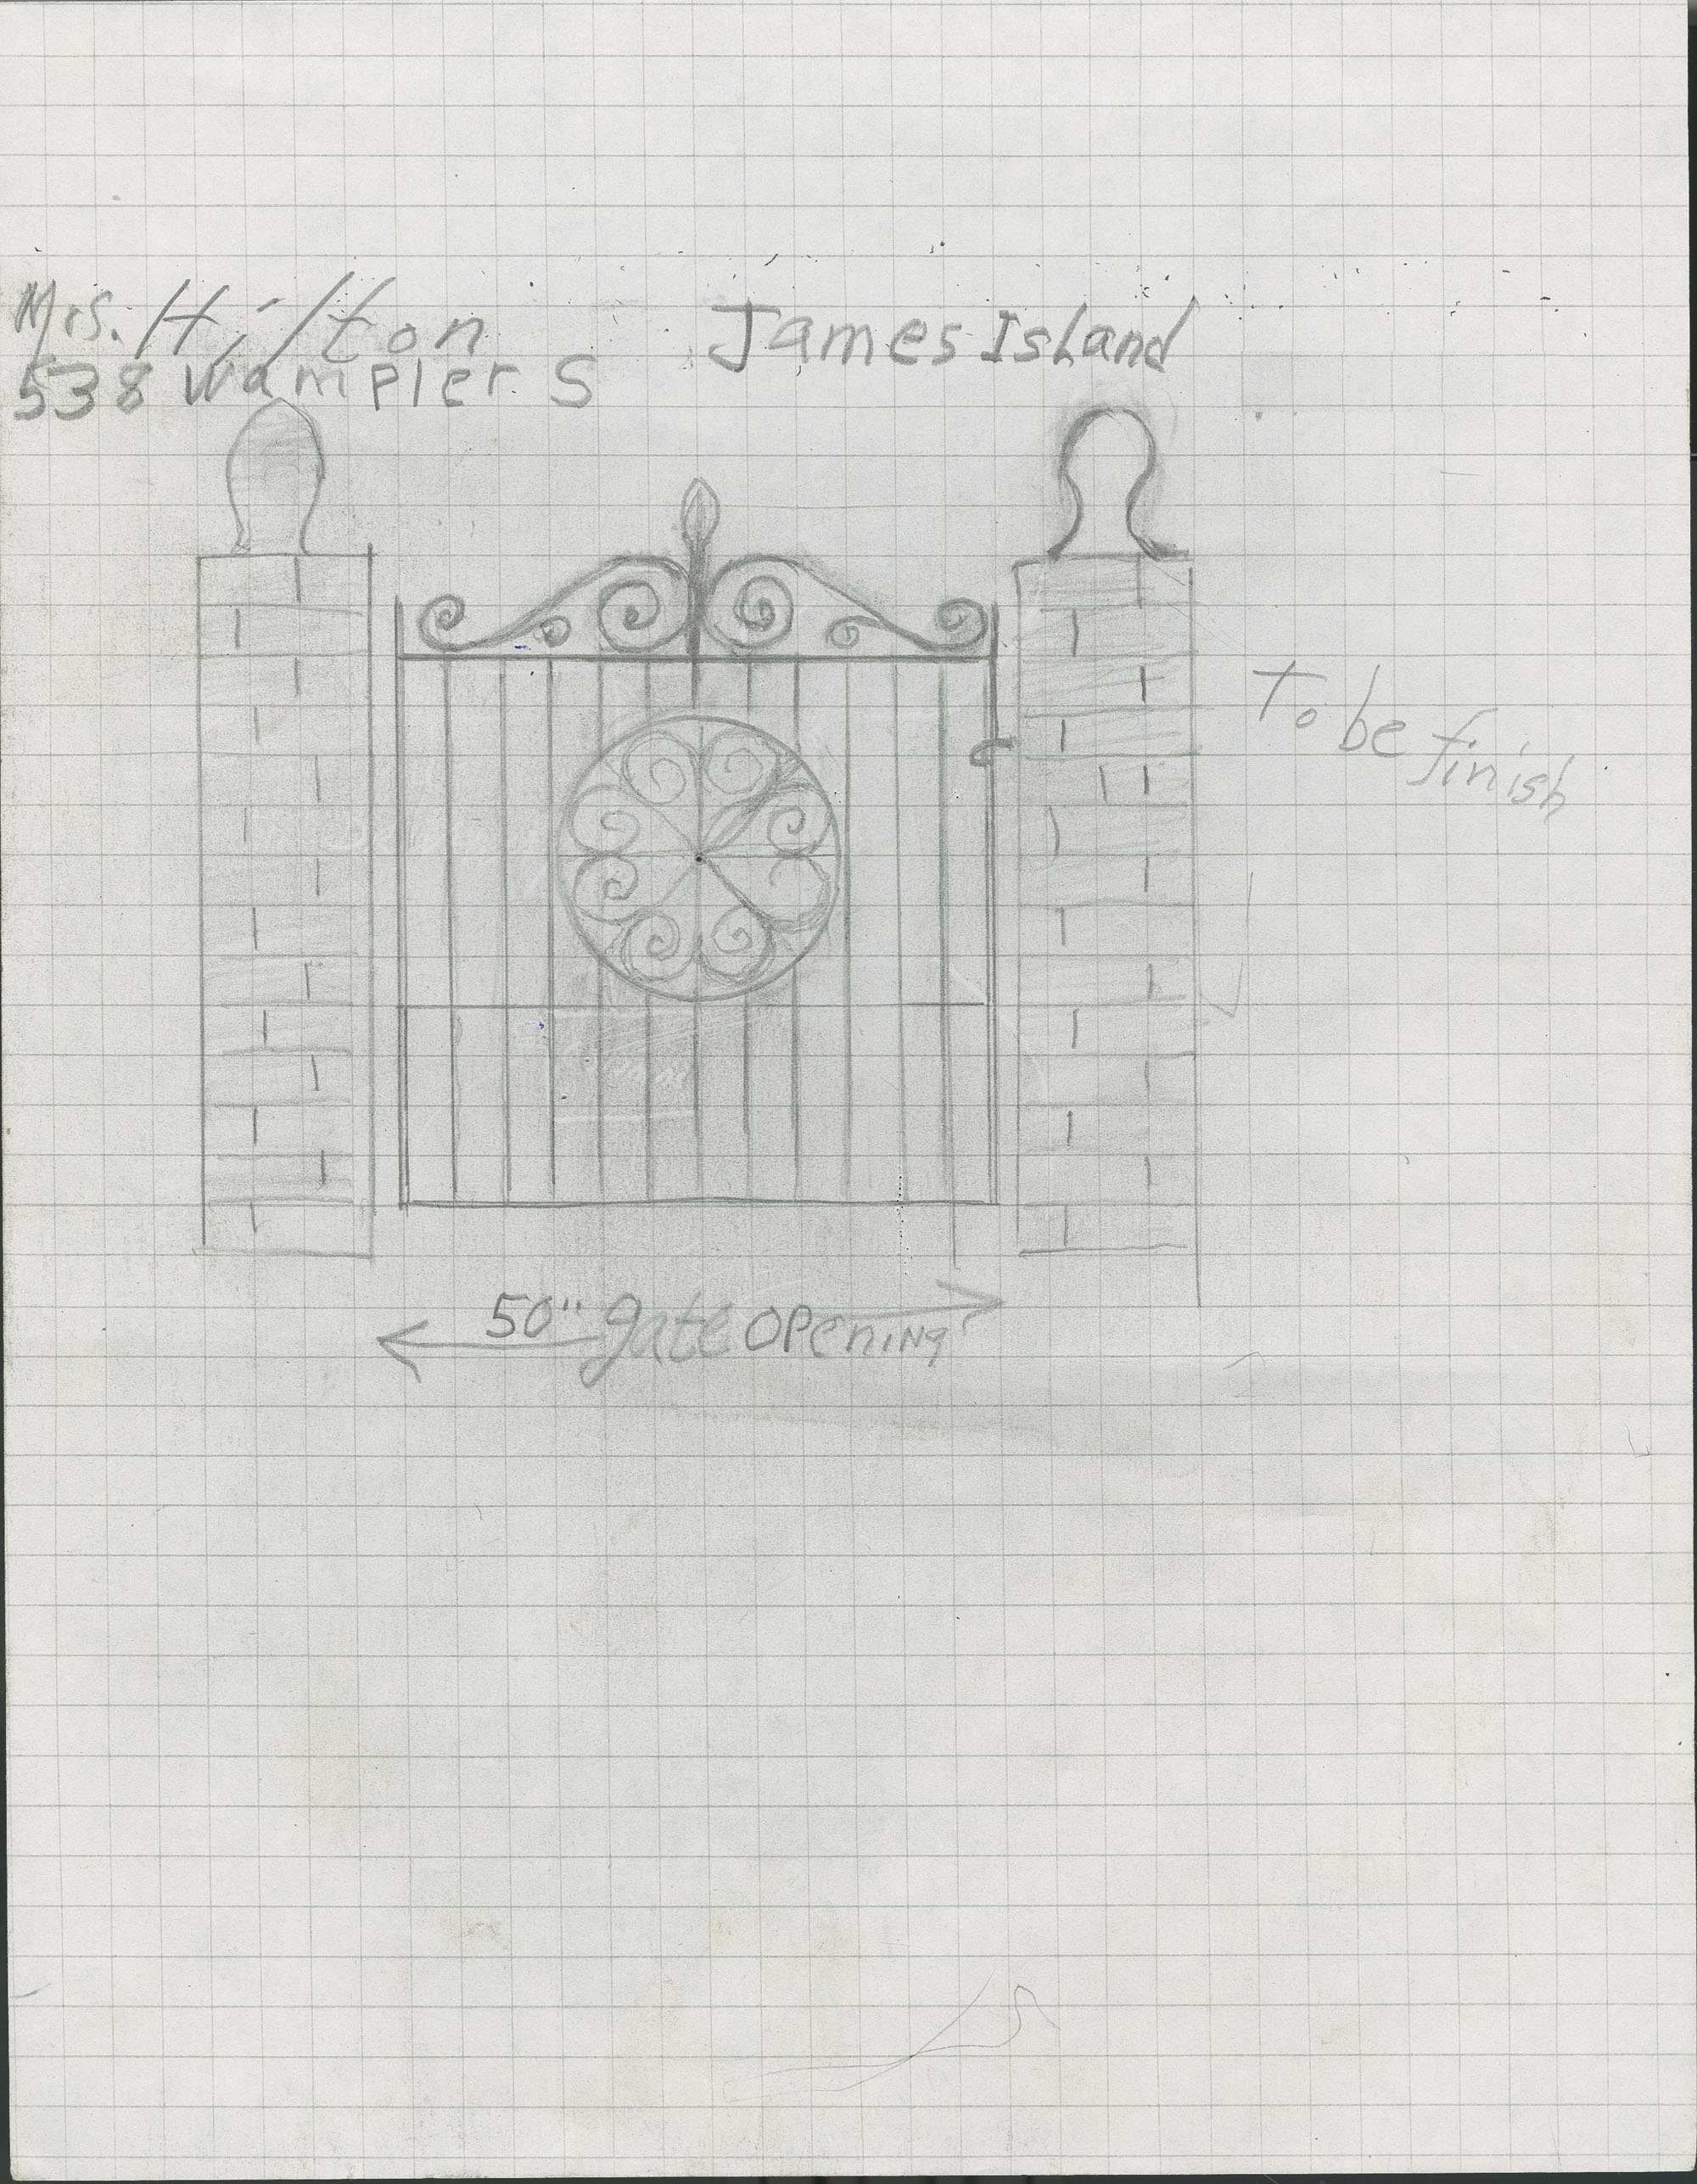 538 Wampler Drive, James Island, South Carolina entrance gate drawings and estimate.